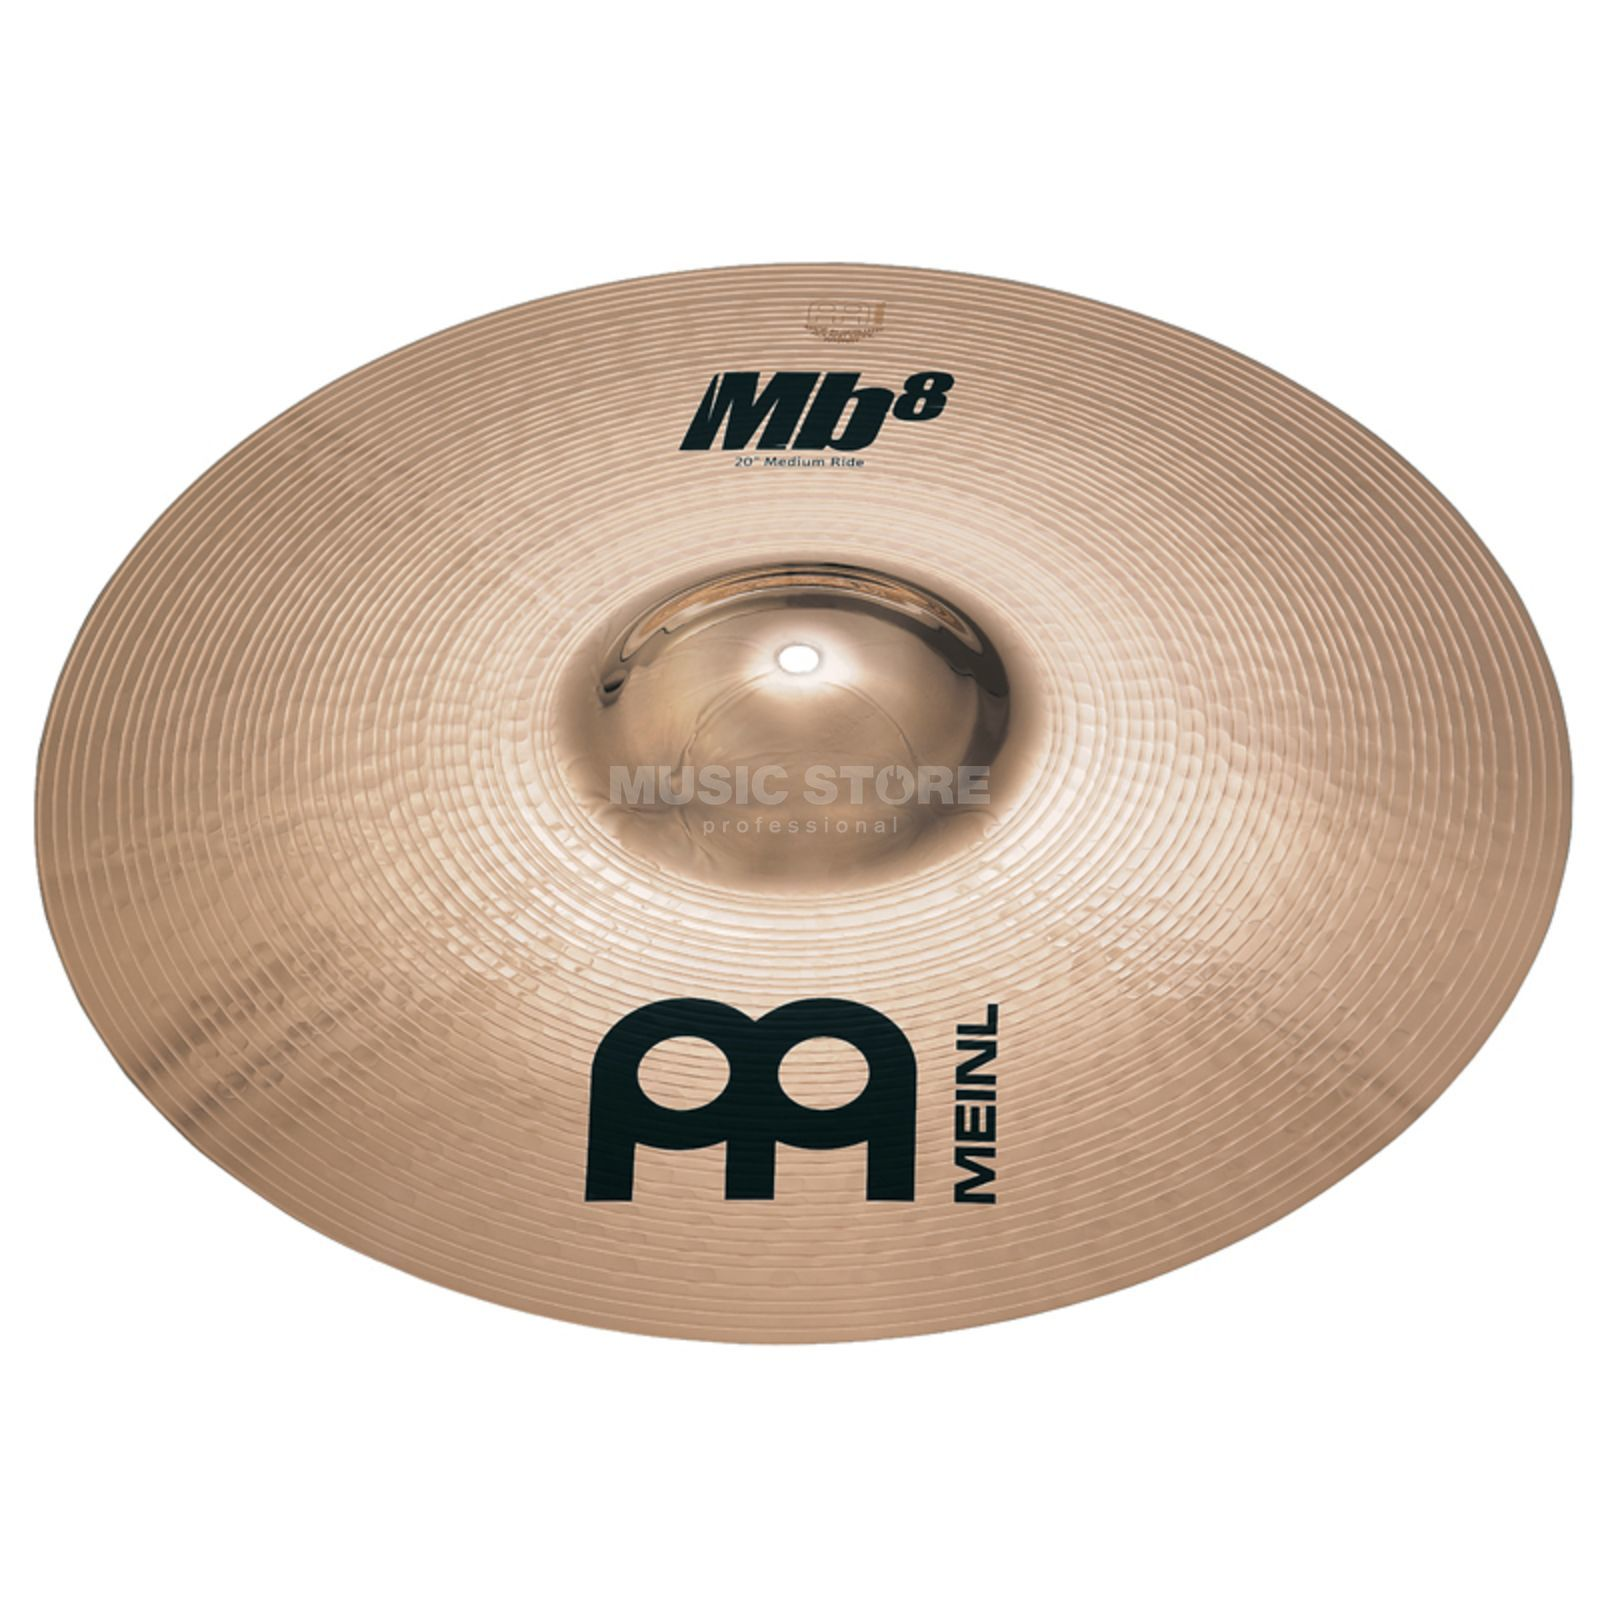 "Meinl MB8 Heavy Ride 22"", MB8-22HR-B, Brilliant Finish Immagine prodotto"